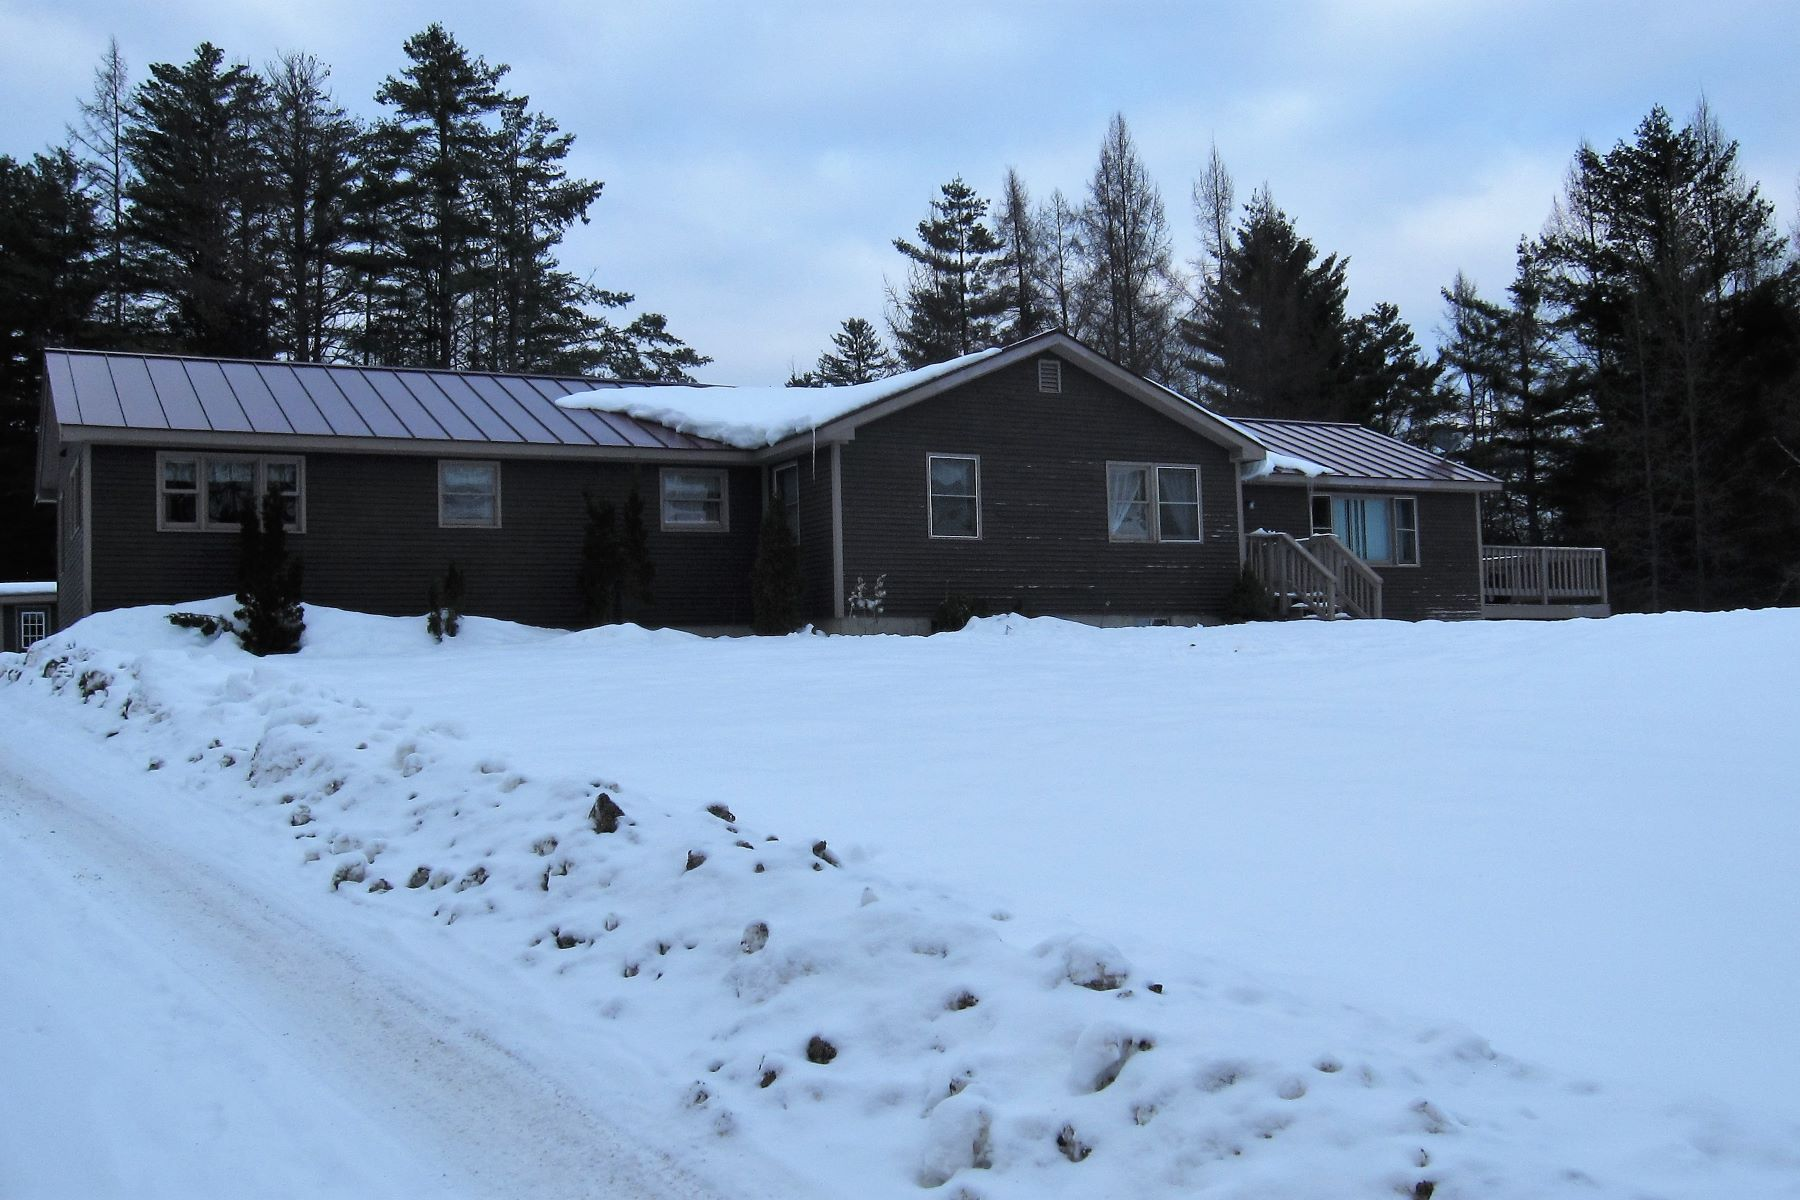 Single Family Home for Sale at Three Bedroom Ranch in Groton 44 Cross Rd Groton, Vermont 05046 United States